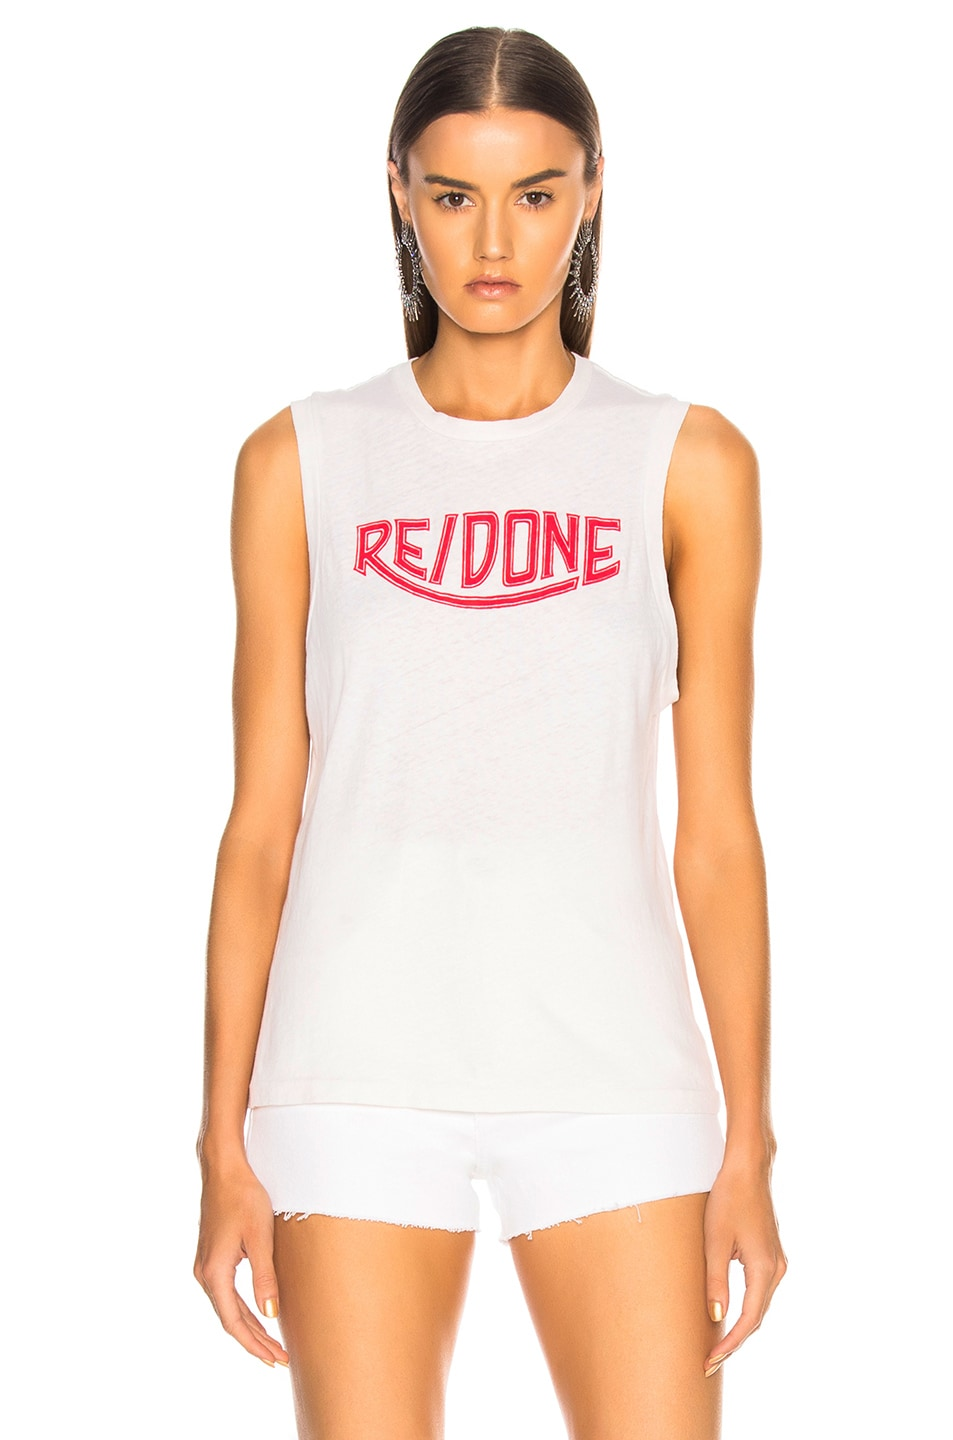 Image 2 of RE/DONE Muscle Tank Red Triumph Logo in Vintage White